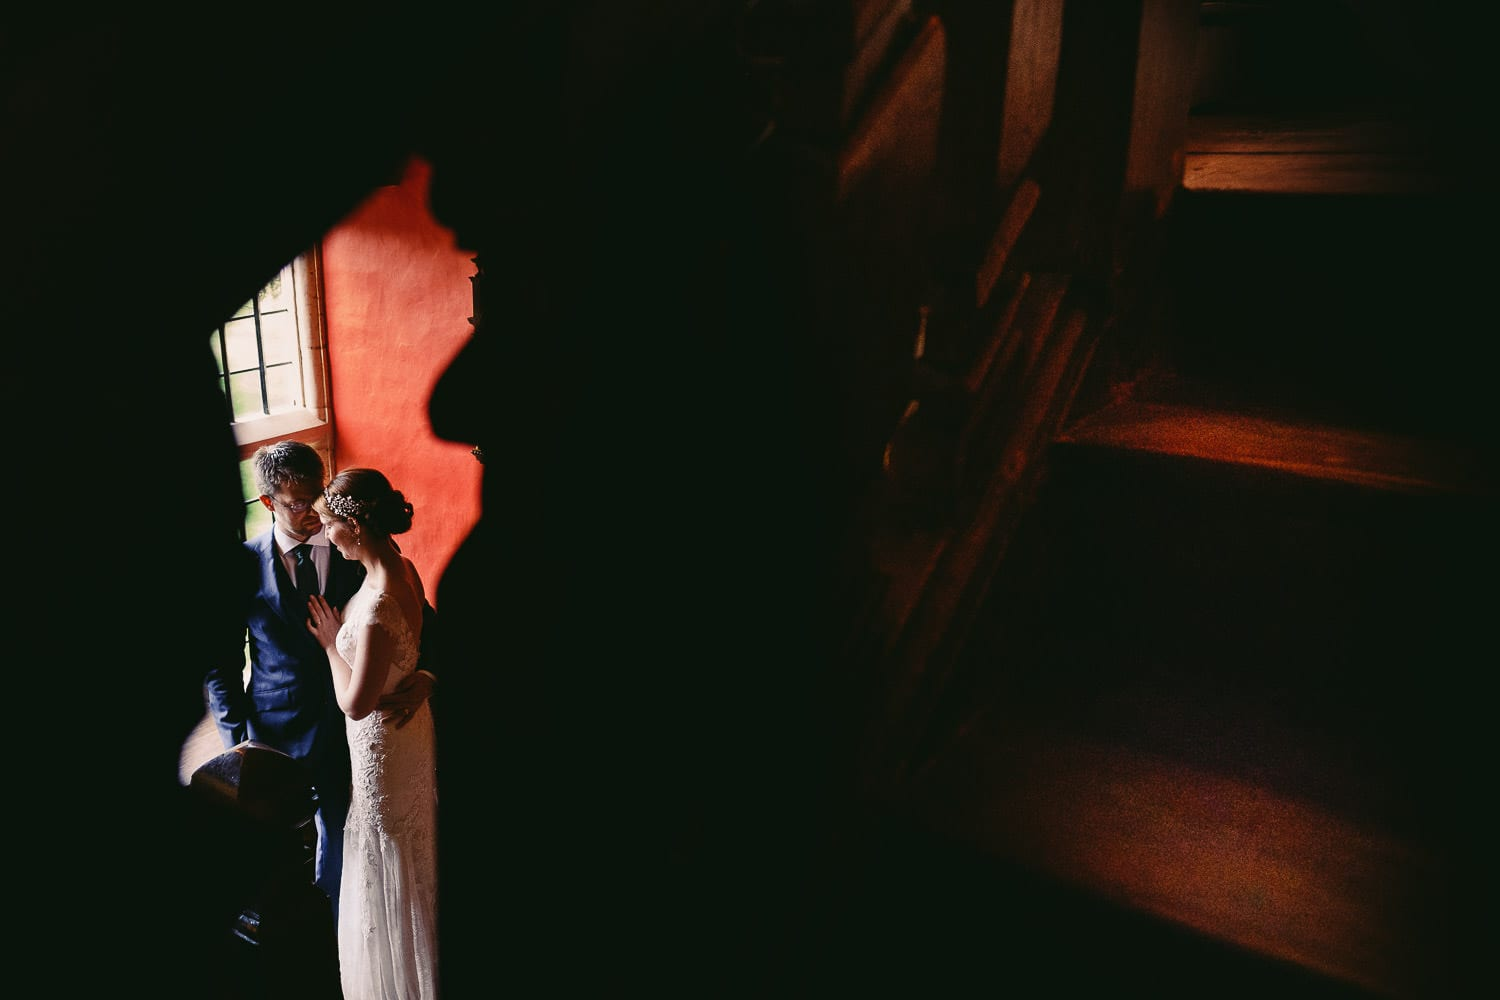 The bride and groom on the stairs at Elmore Court